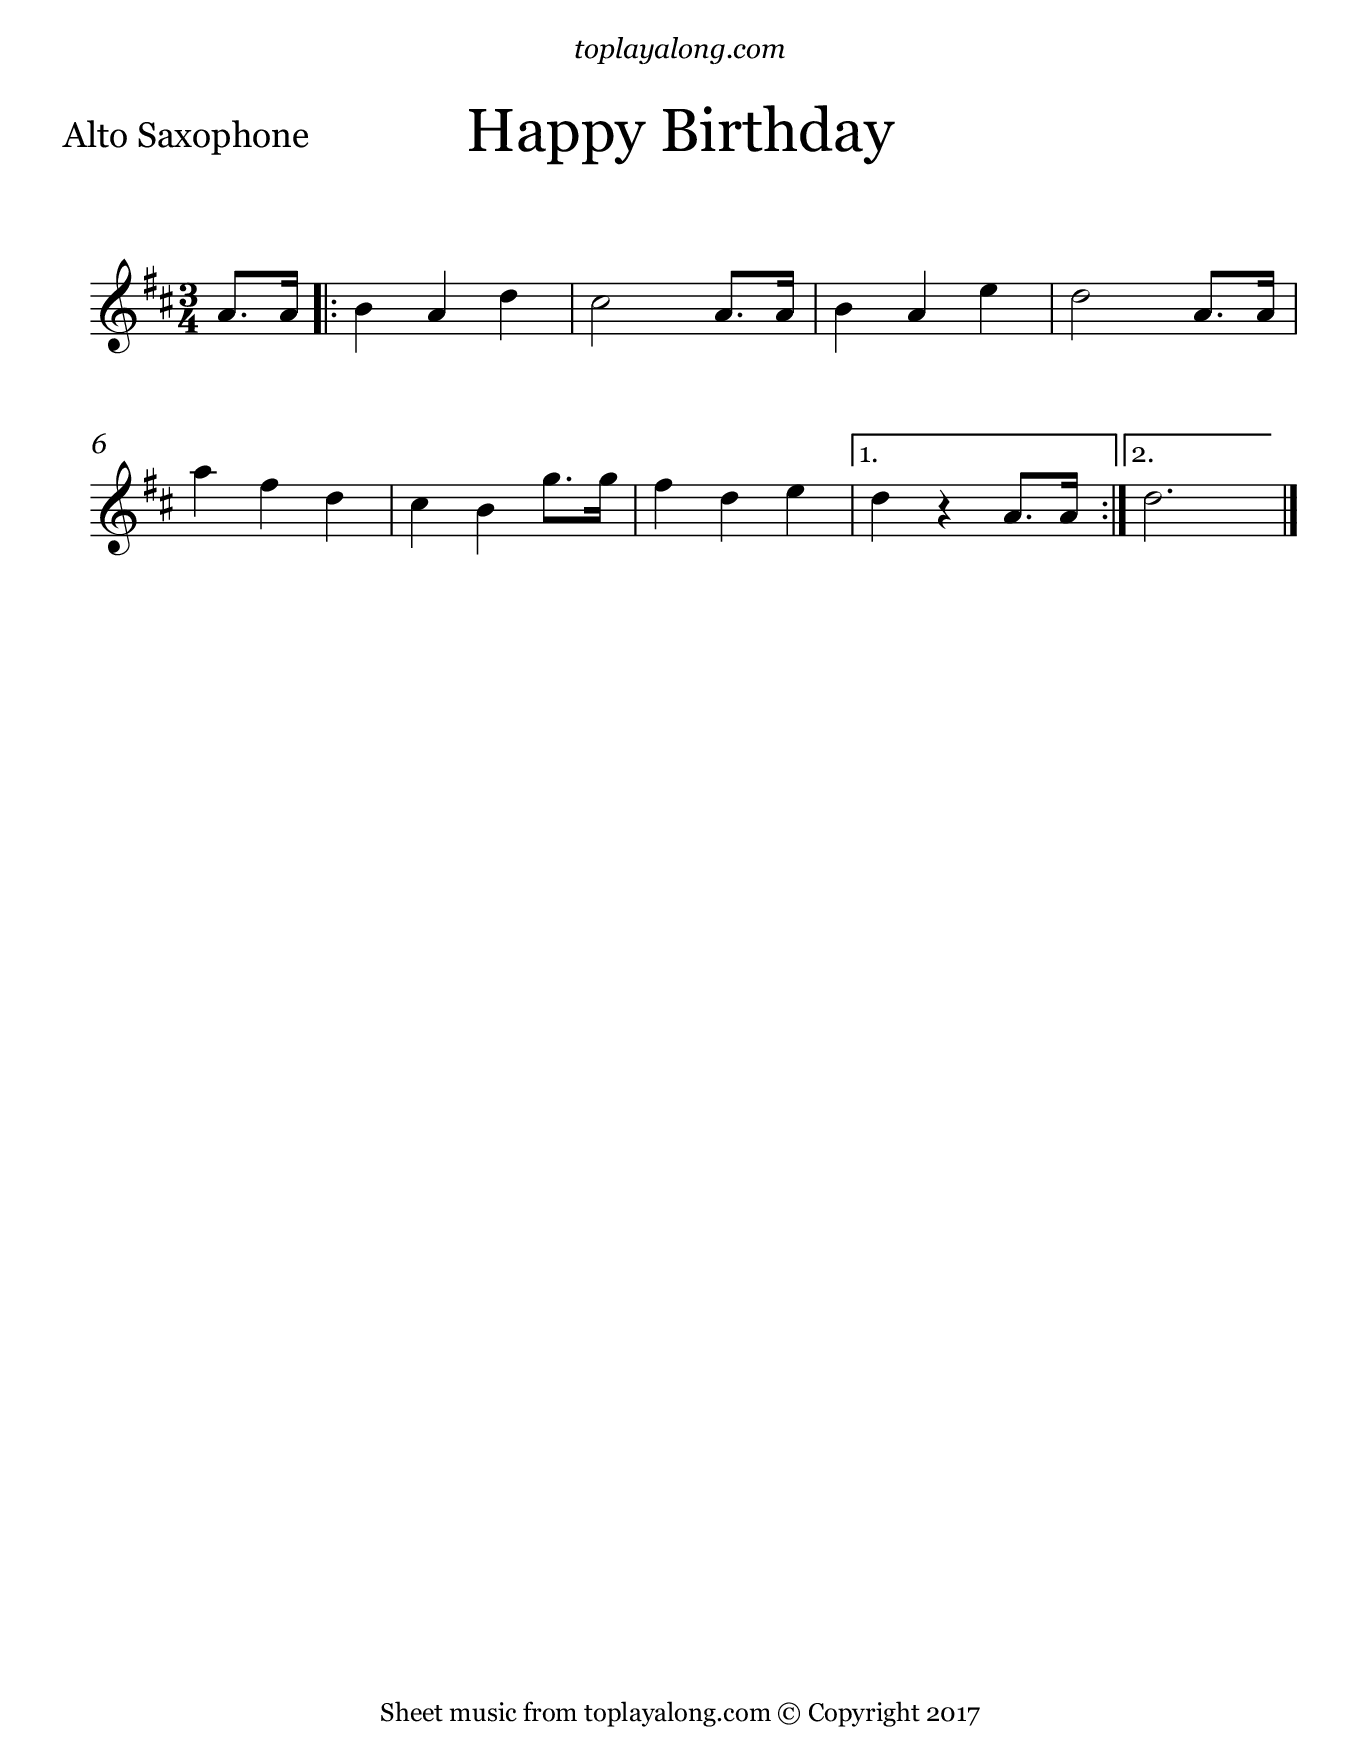 Happy Birthday. Sheet music for Alto Sax, page 1.